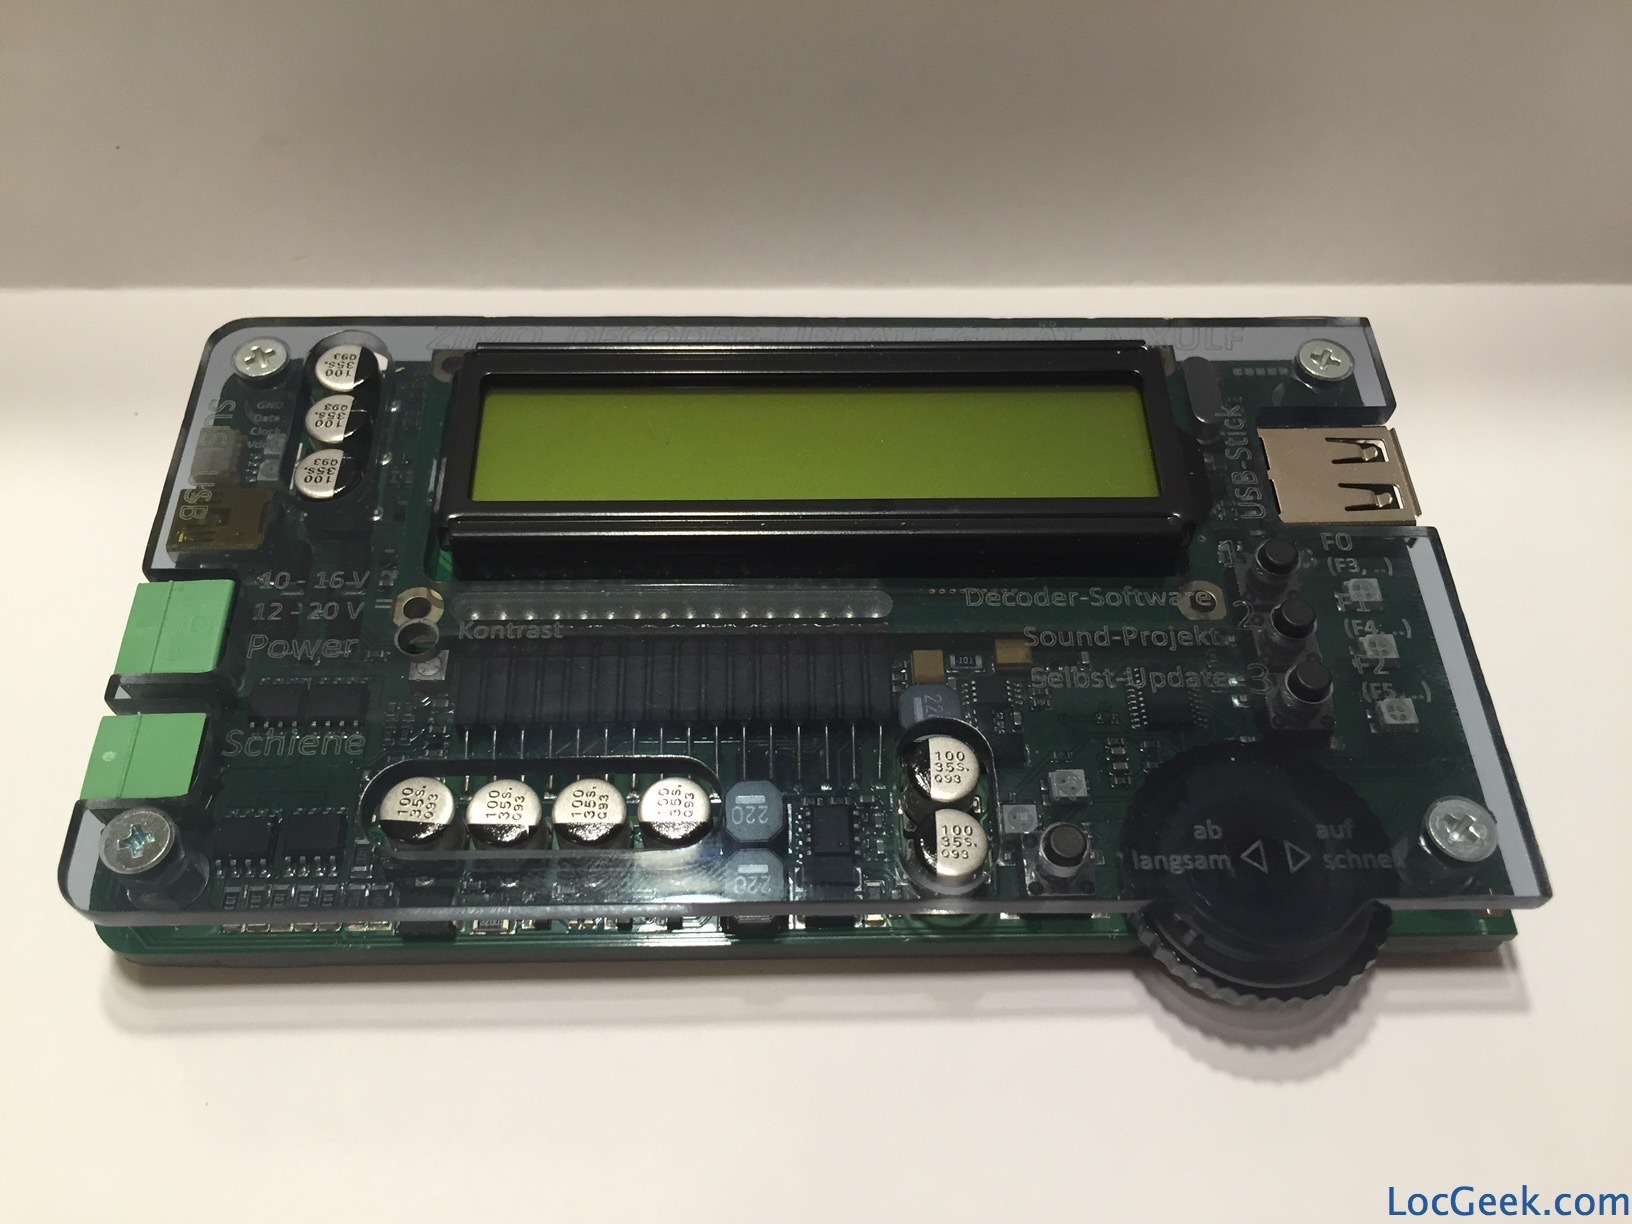 Zimo MXULFA decoder programmer review